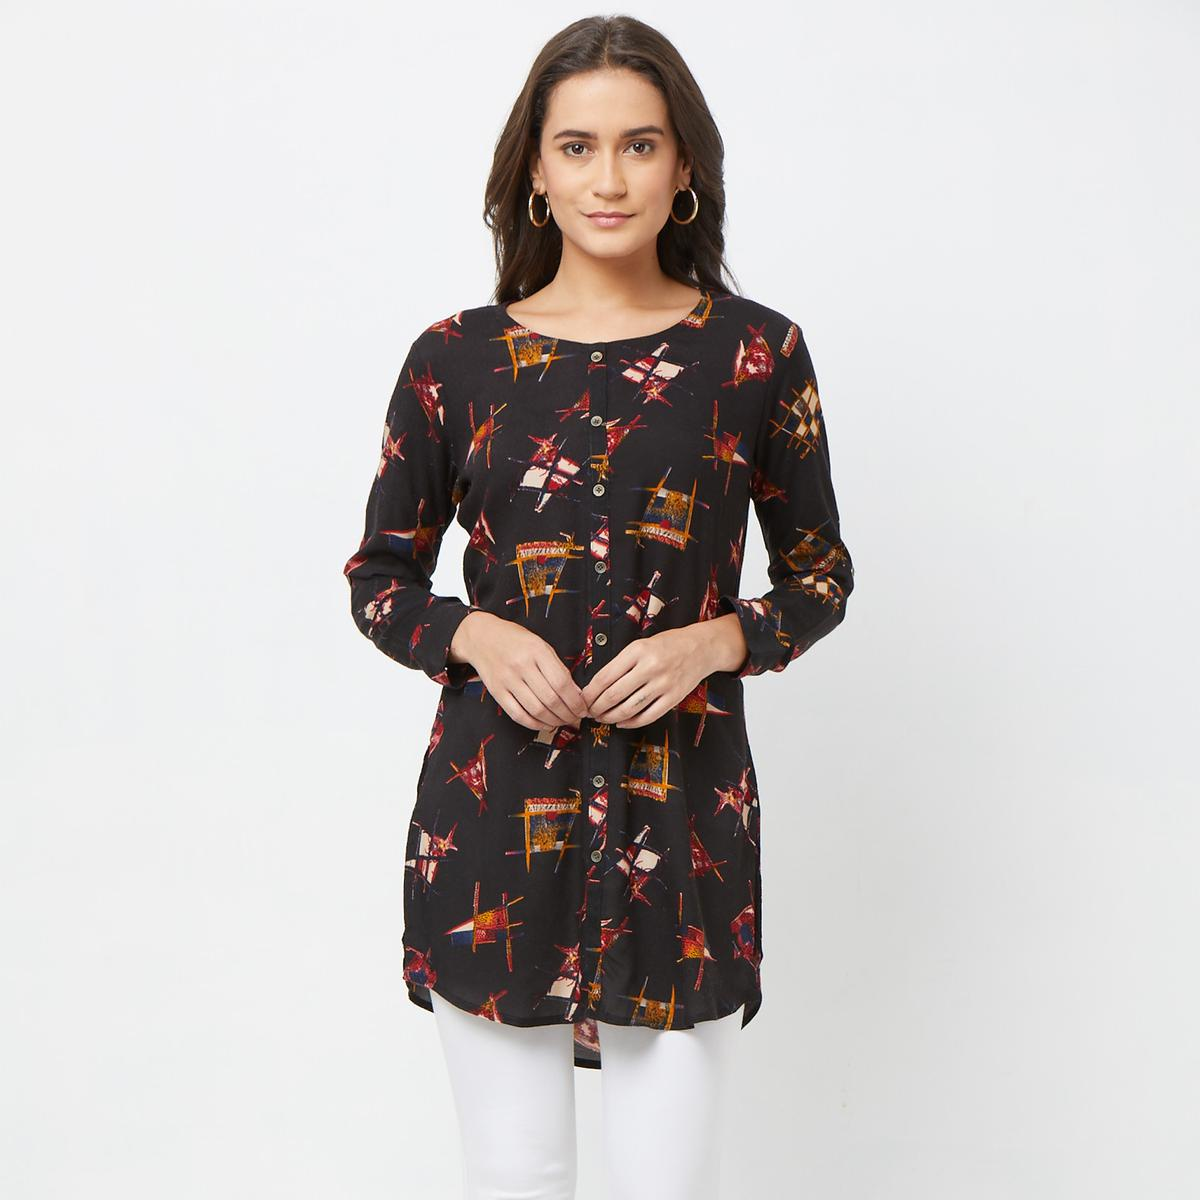 Entrancing Black Colored Casual Printed Rayon Kurti